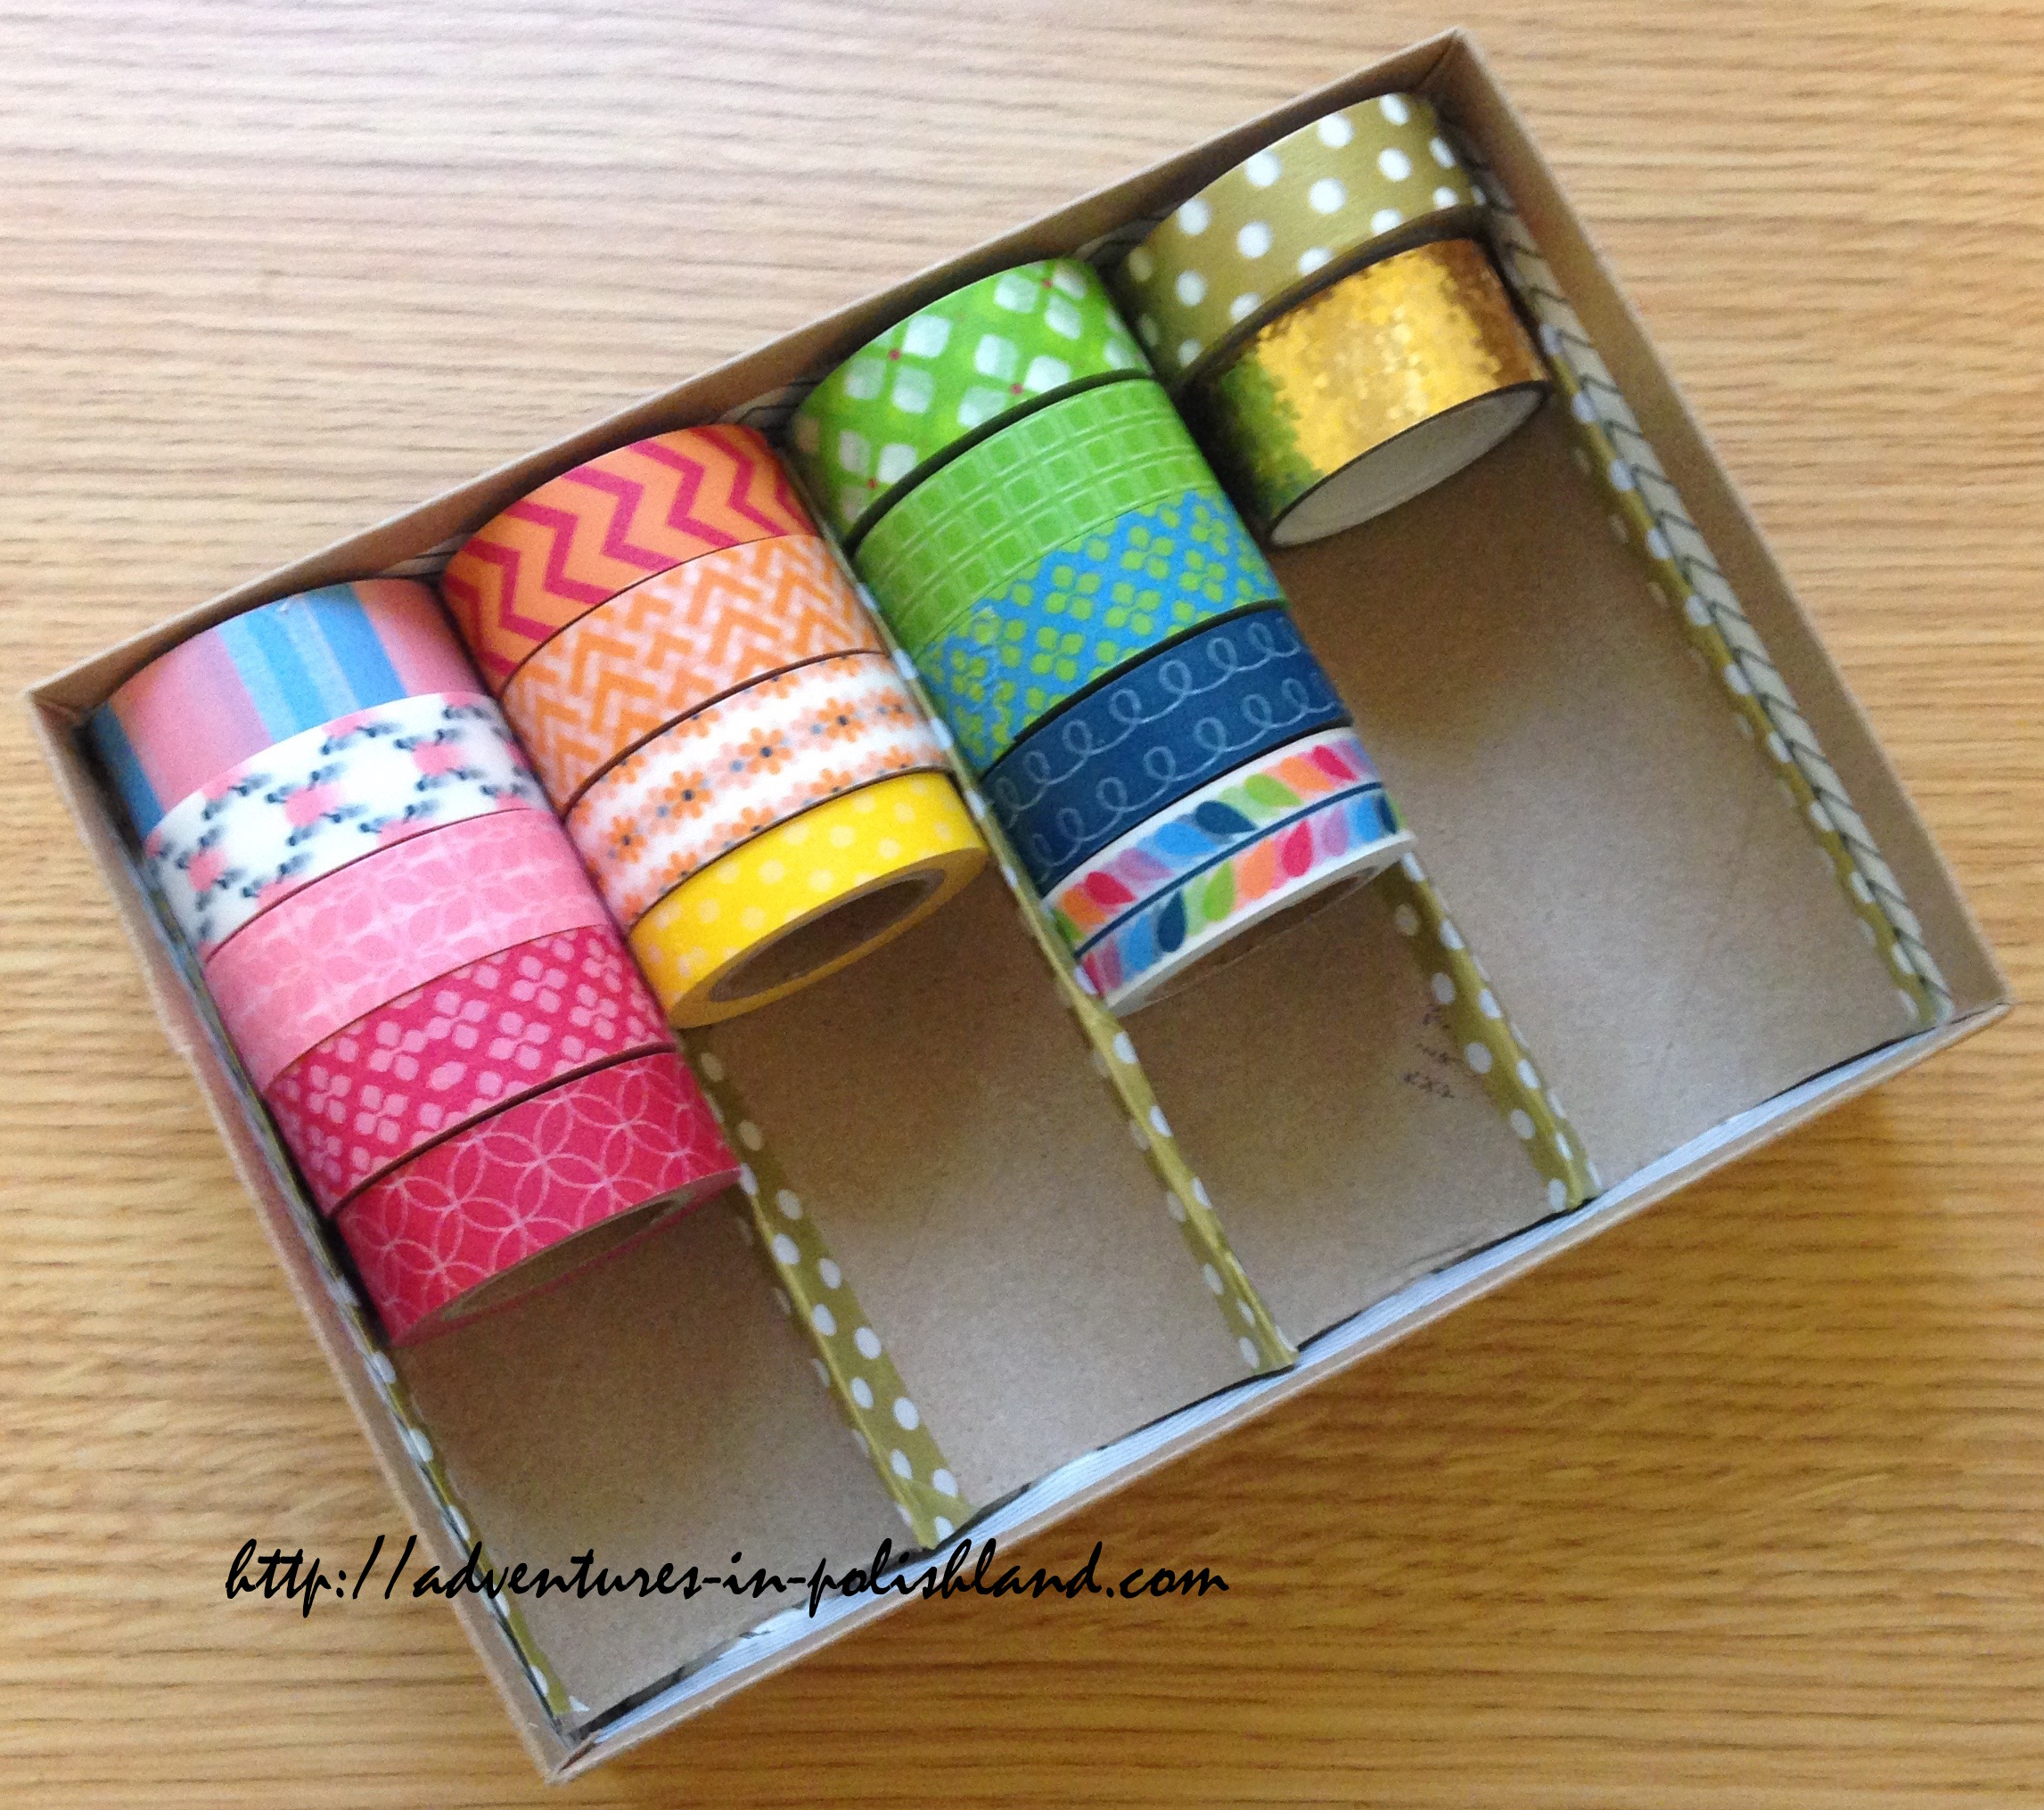 diy washi tape storage birchbox upcycling project planwithpolishland adventures in polishland. Black Bedroom Furniture Sets. Home Design Ideas